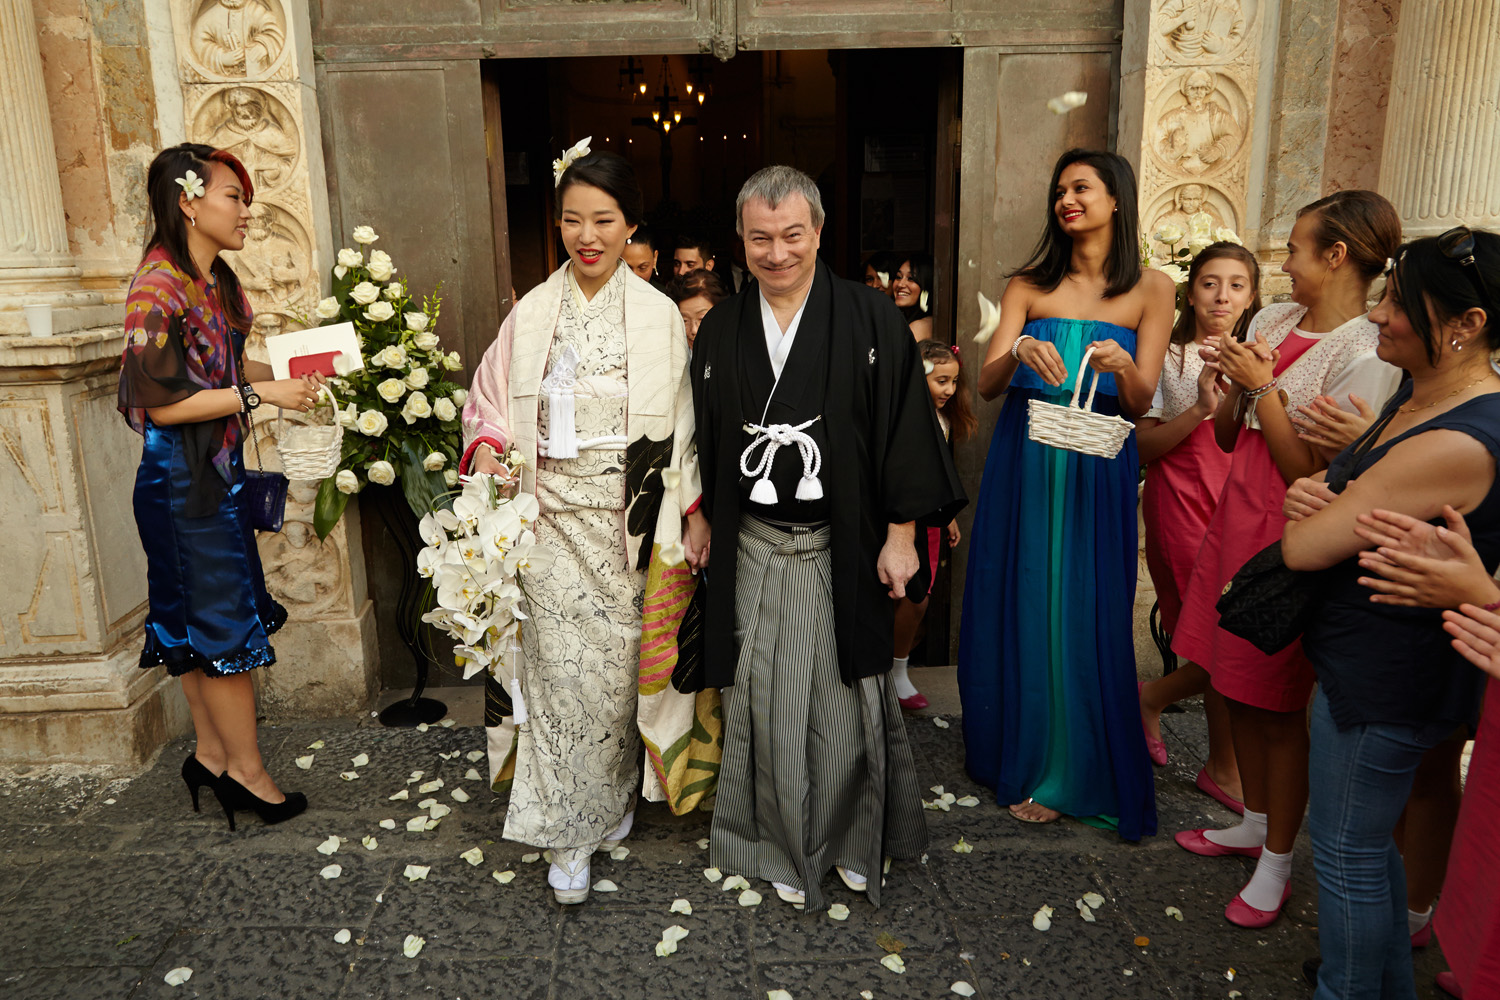 Weddings in Sicily